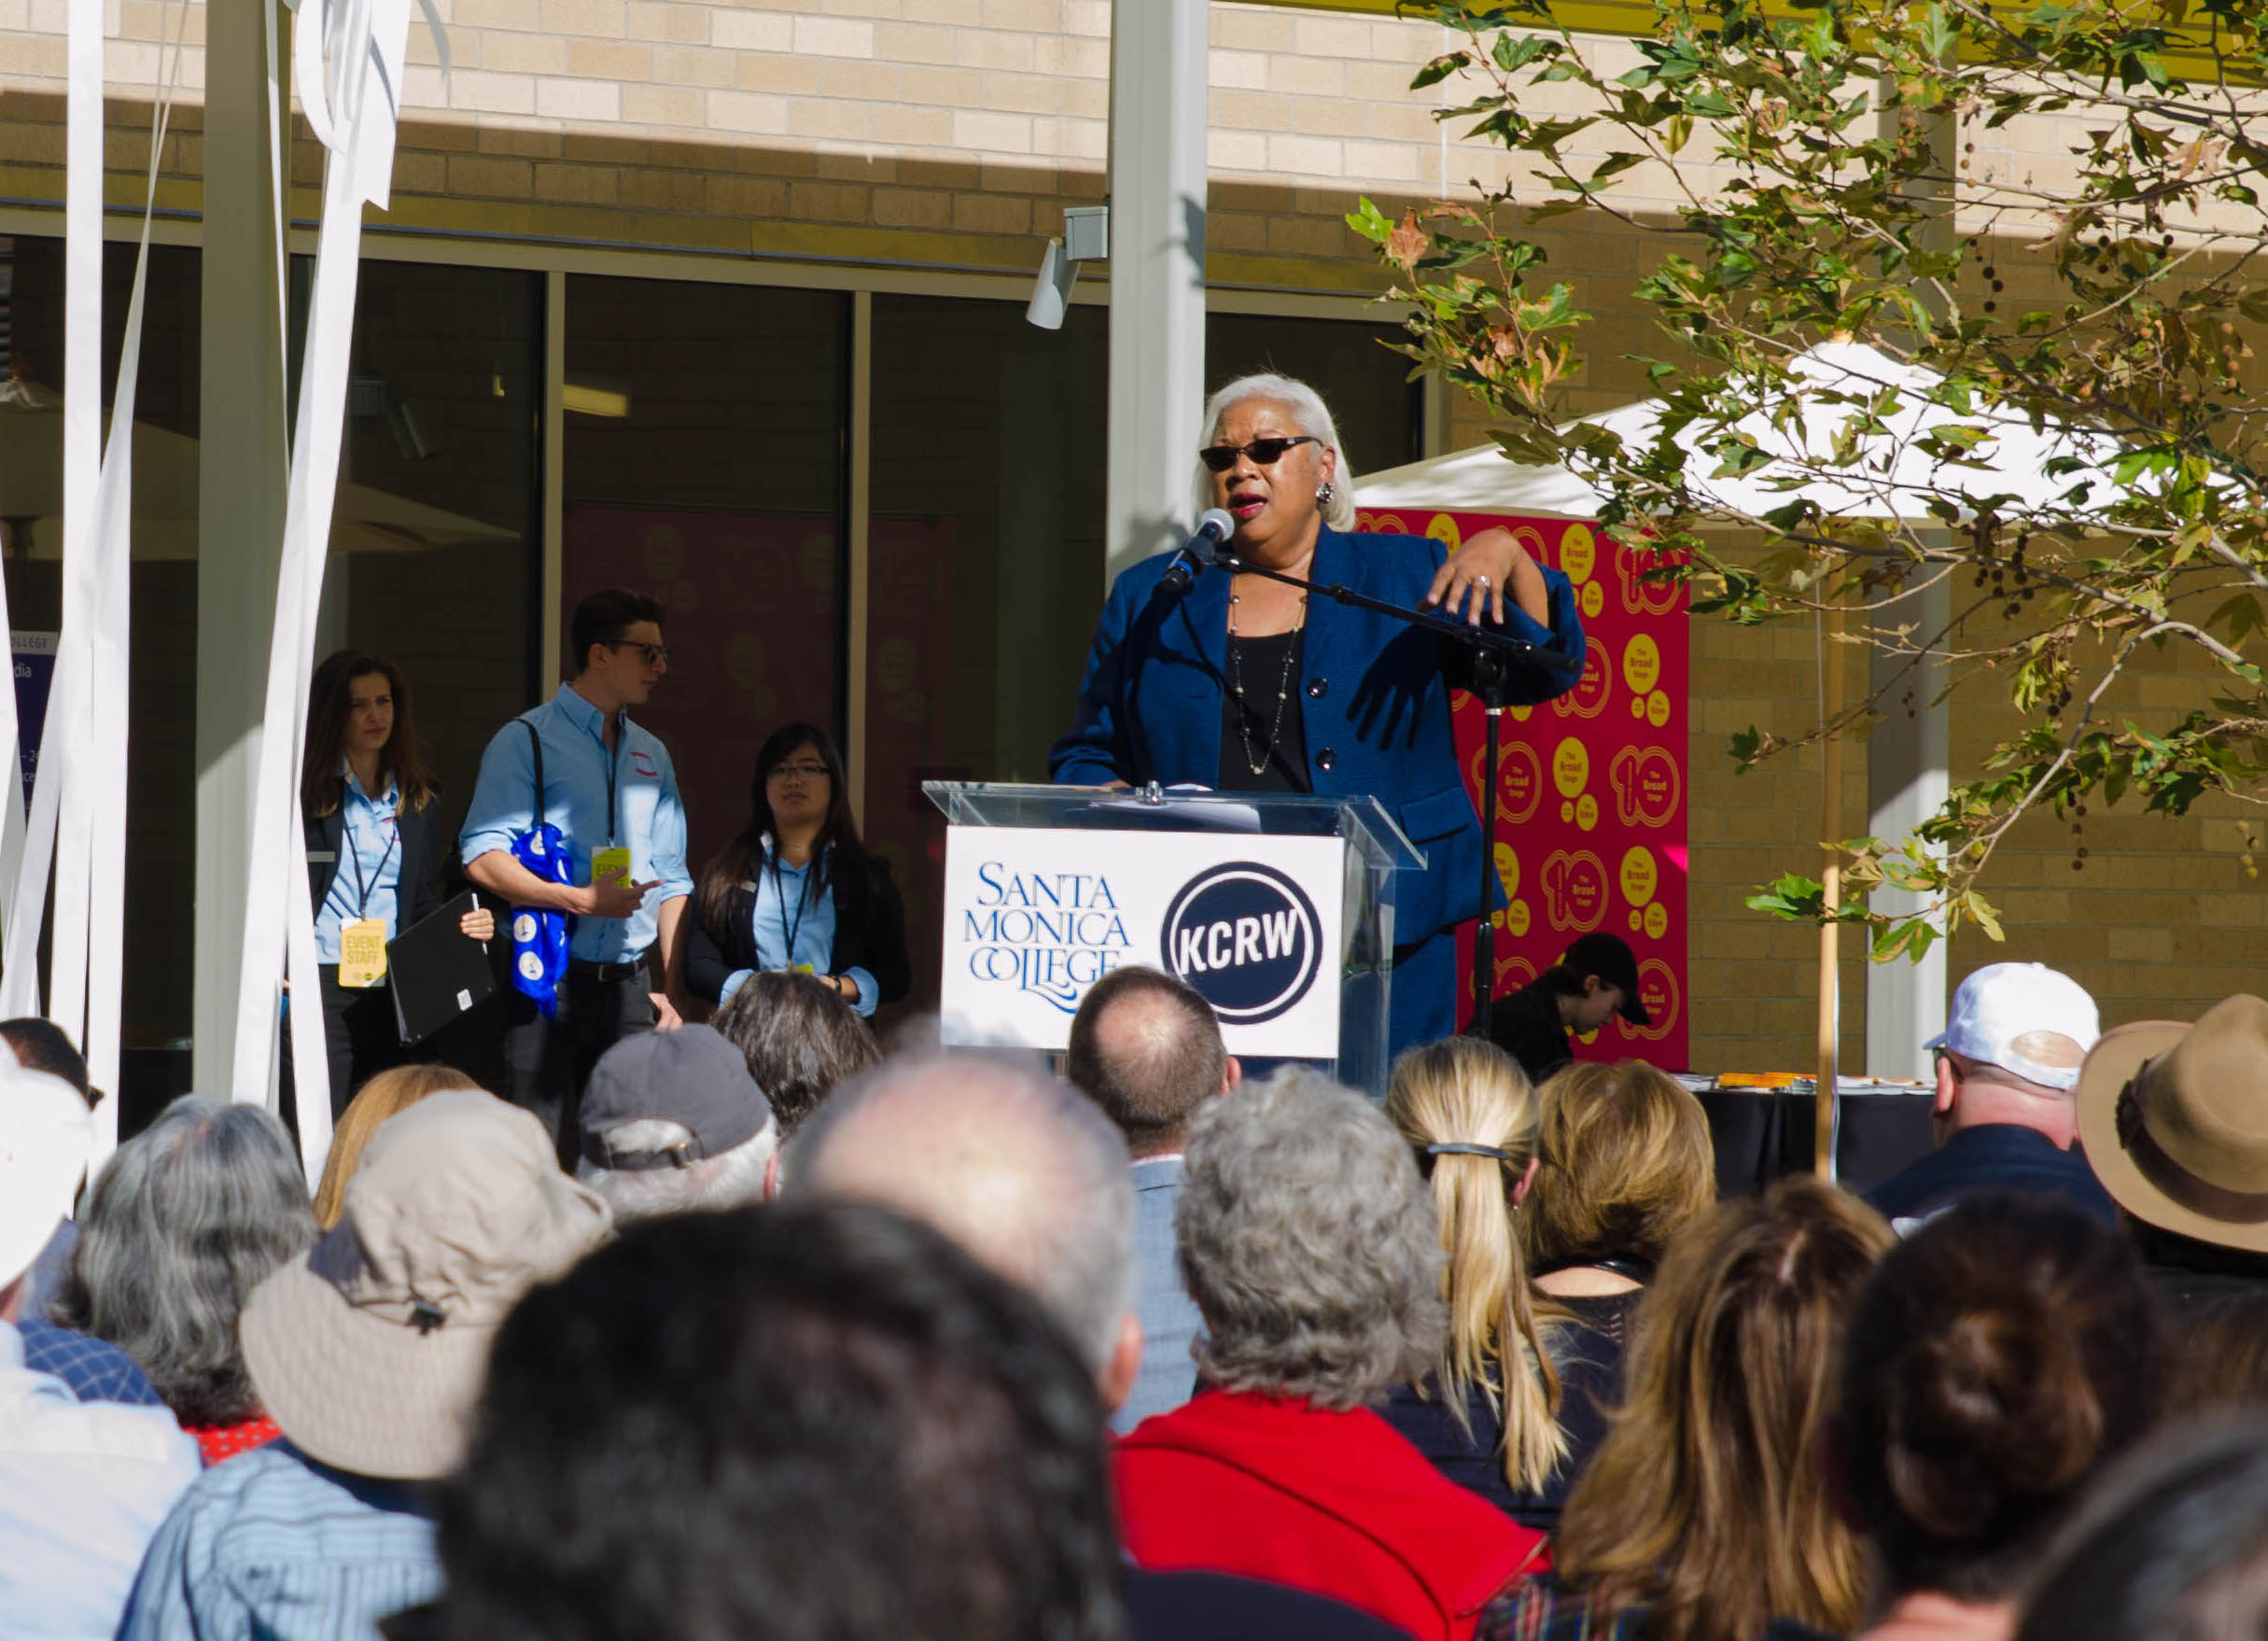 SMC President Dr. Kathryn E. Jeffrey speaks to the audience of sponsors and contributers of the creation of the Center for Media and Design and KCRW Media Center. Santa Monica, Calif. December 2,2017 (Photo by: Diana Parra Garcia)